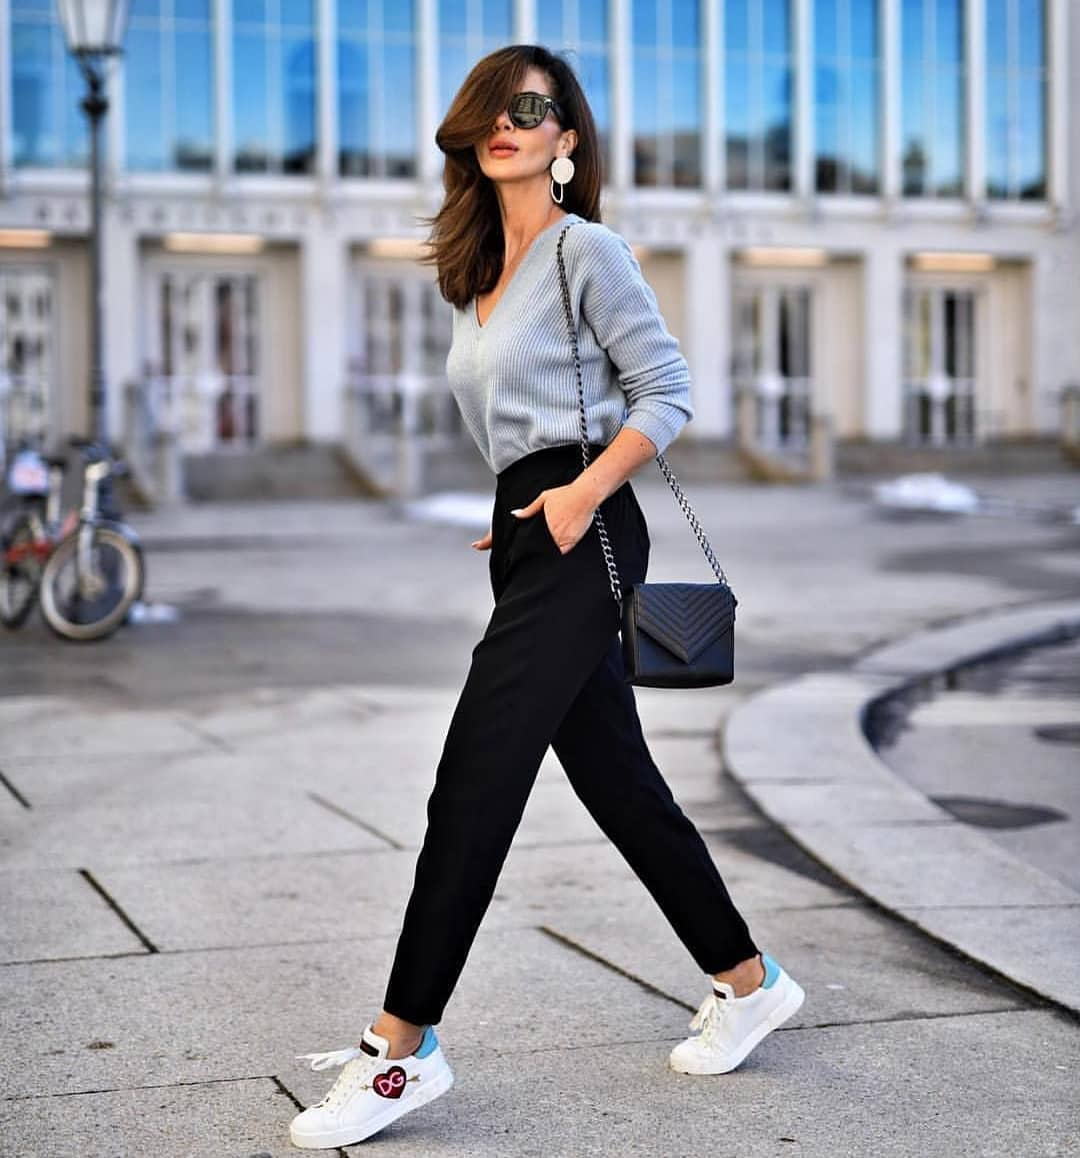 How To Wear Black Pants With White Sneakers This Spring 2019